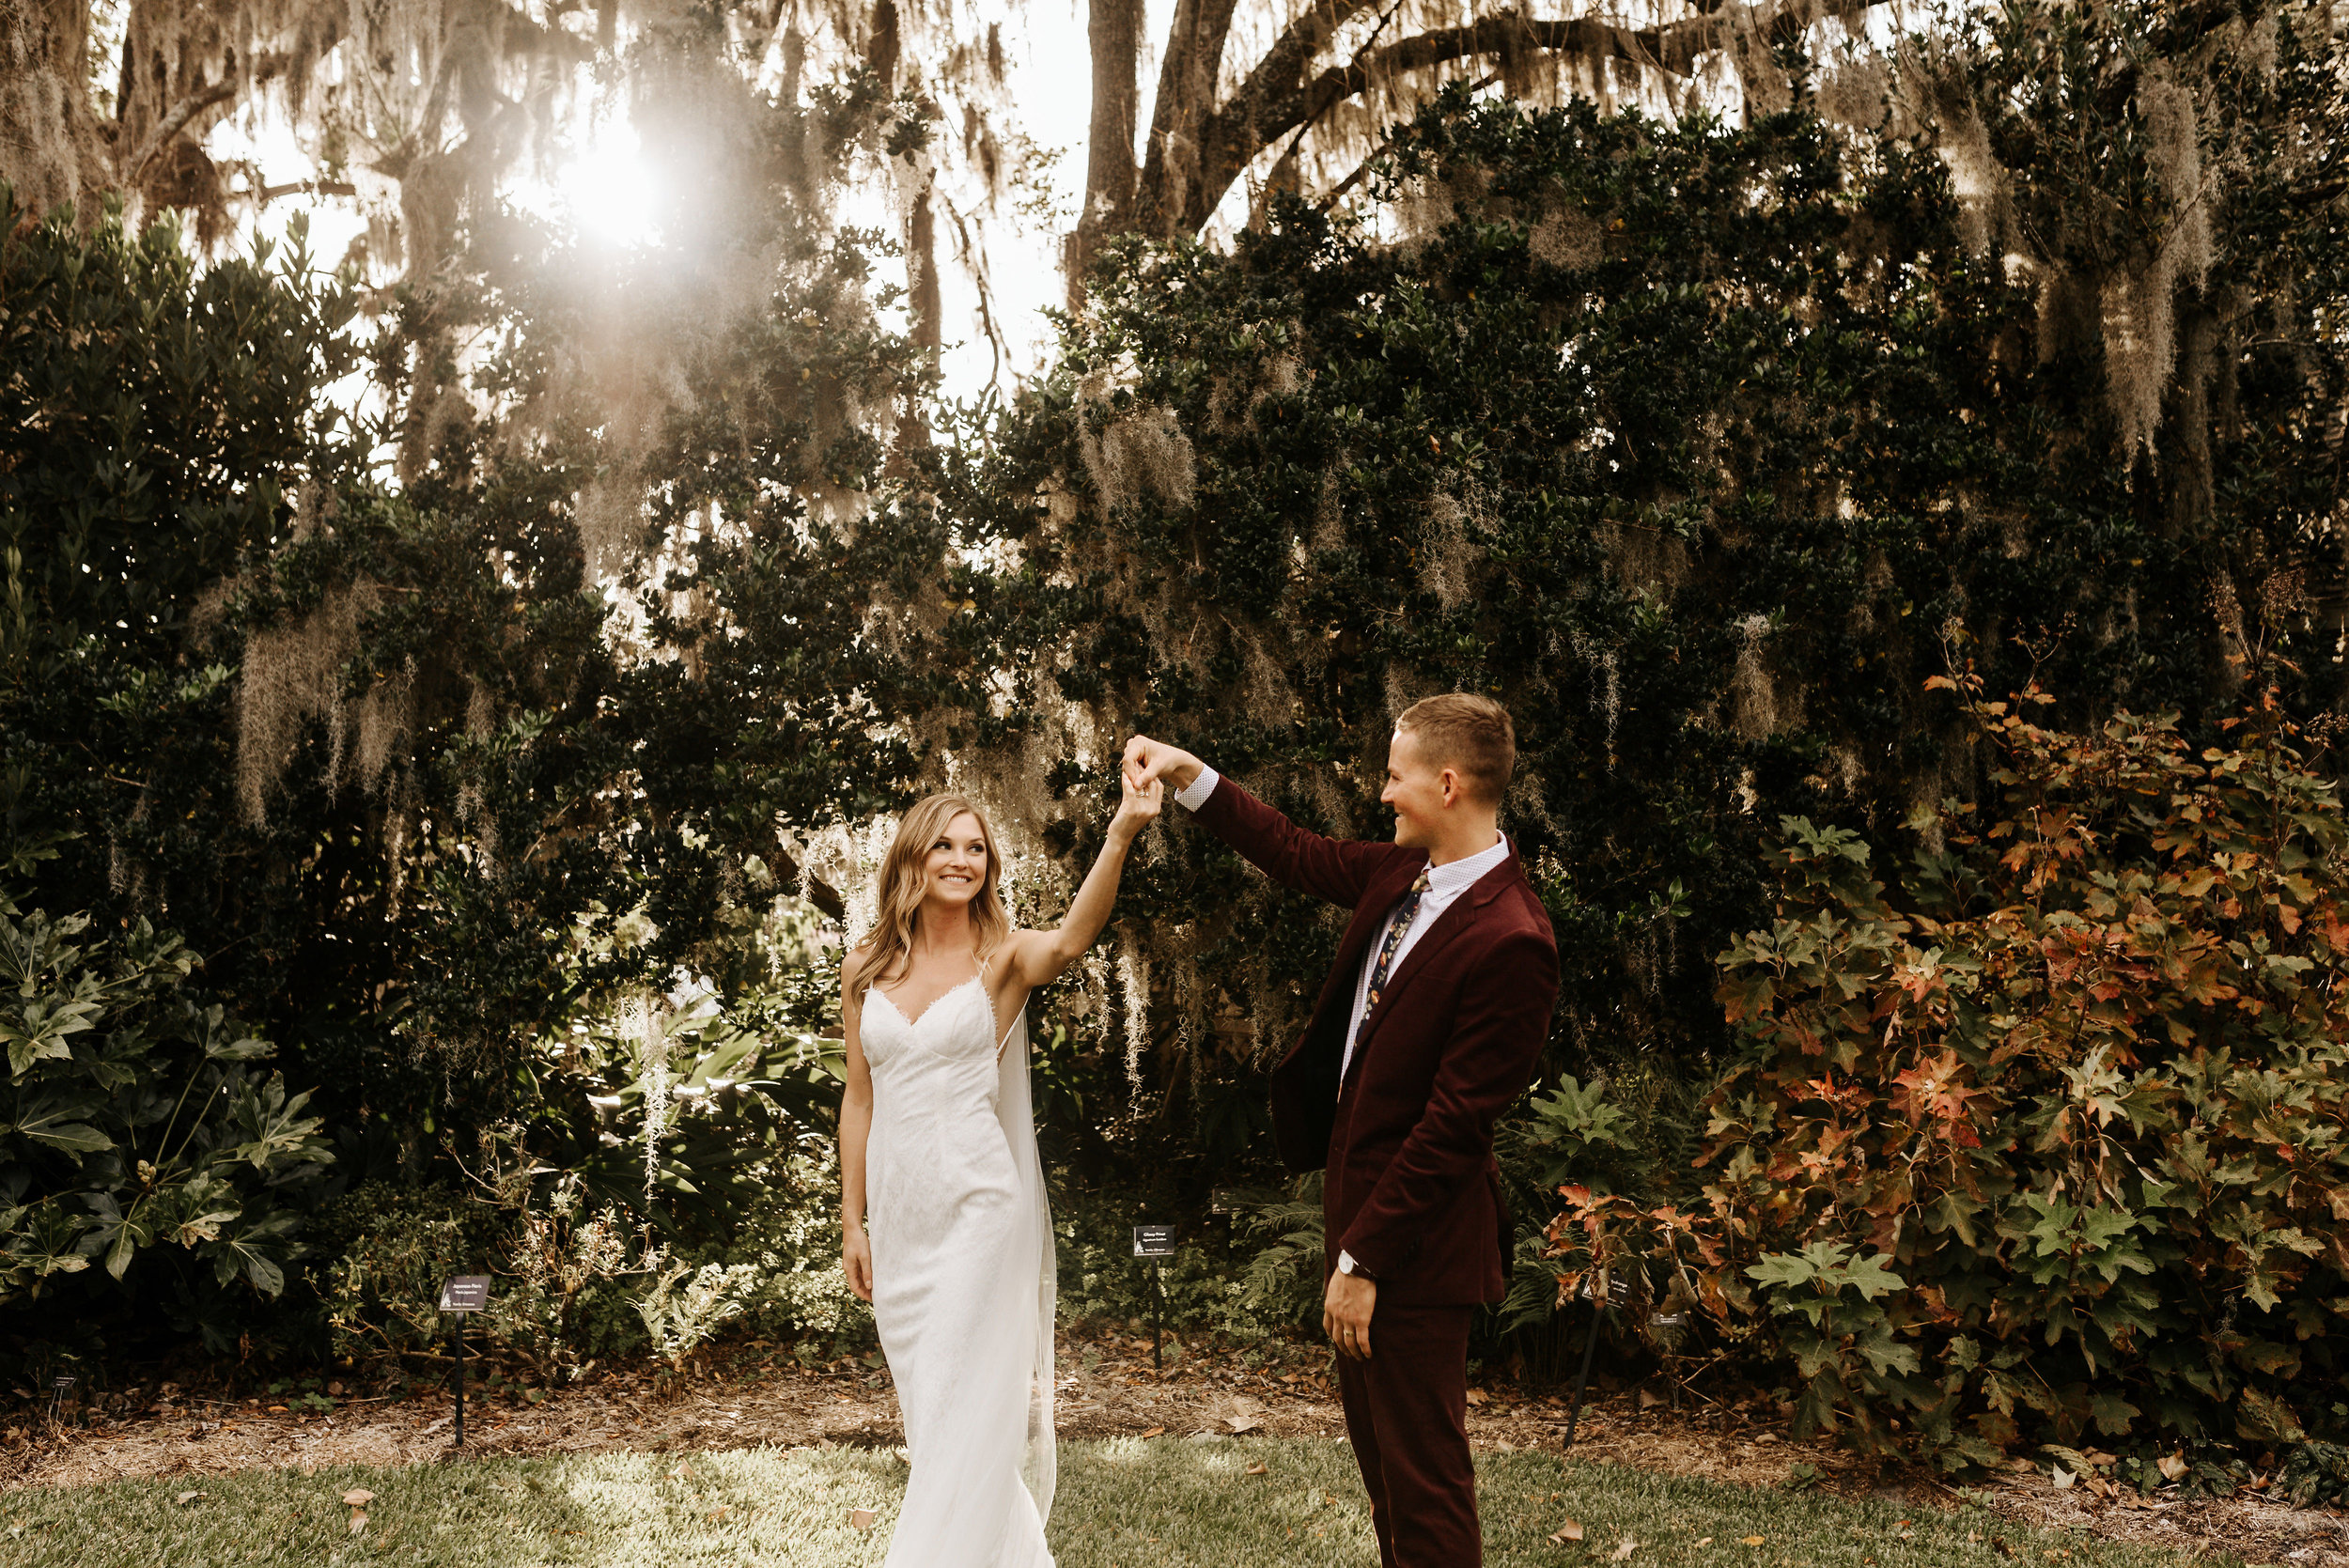 Kourtney_Sean_Savannah_Georgia_Wedding_Wormsloe_Histroic_Site_Coastal_Georgia_Botanical_Gardens_Photography_by_V_4158.jpg